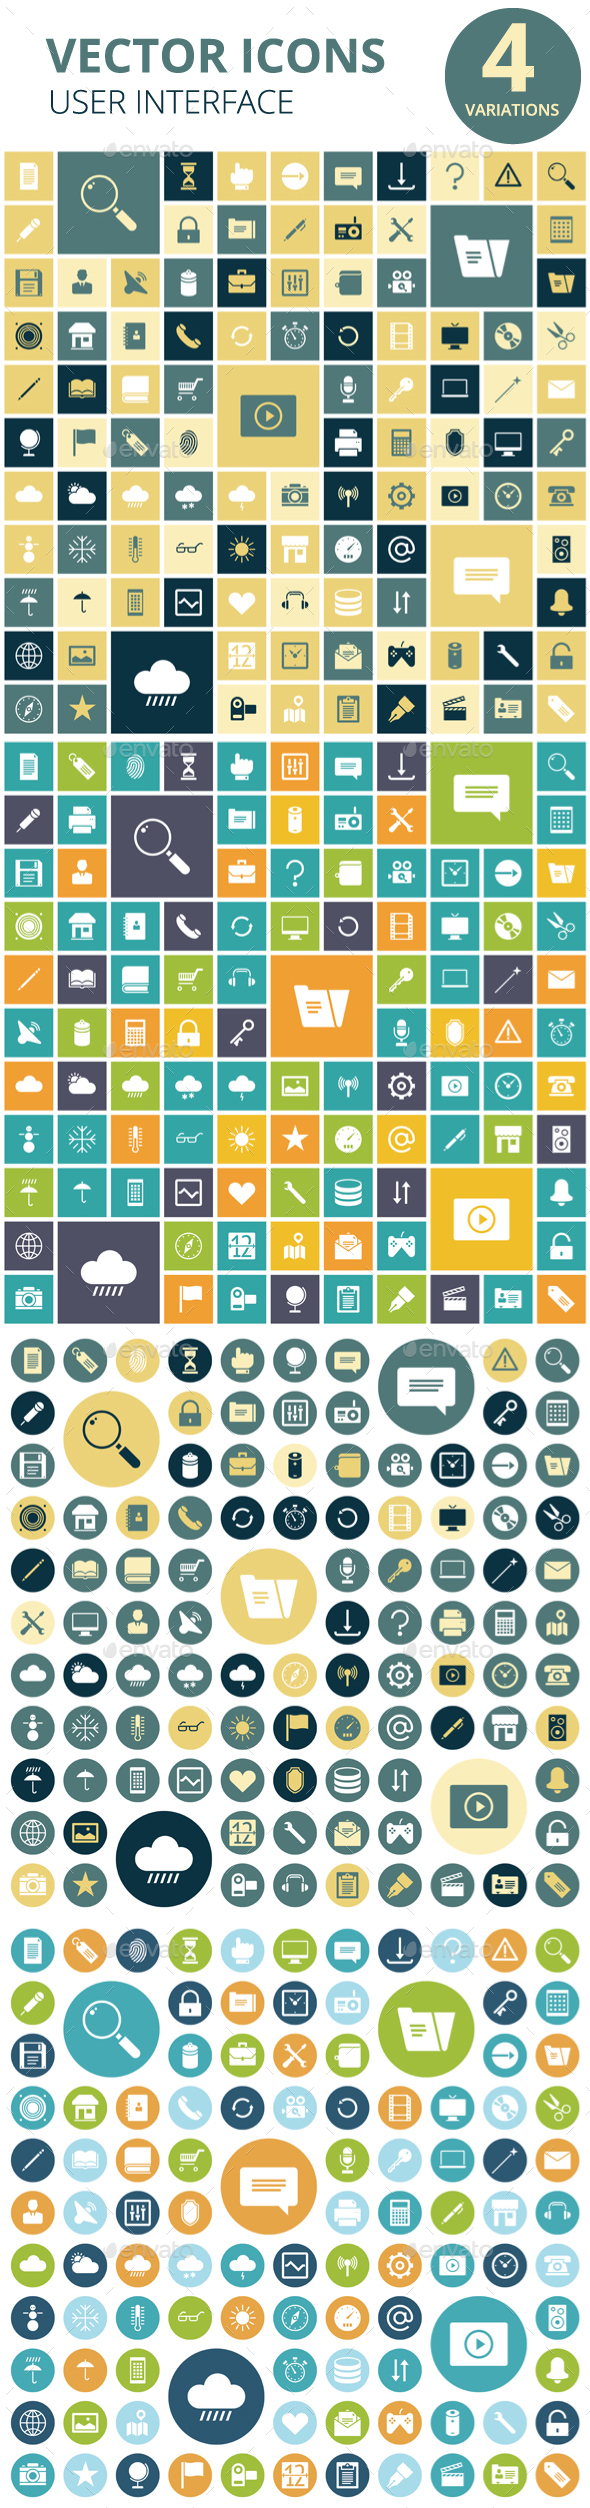 Flat Design Icons for User Interface - Web Icons